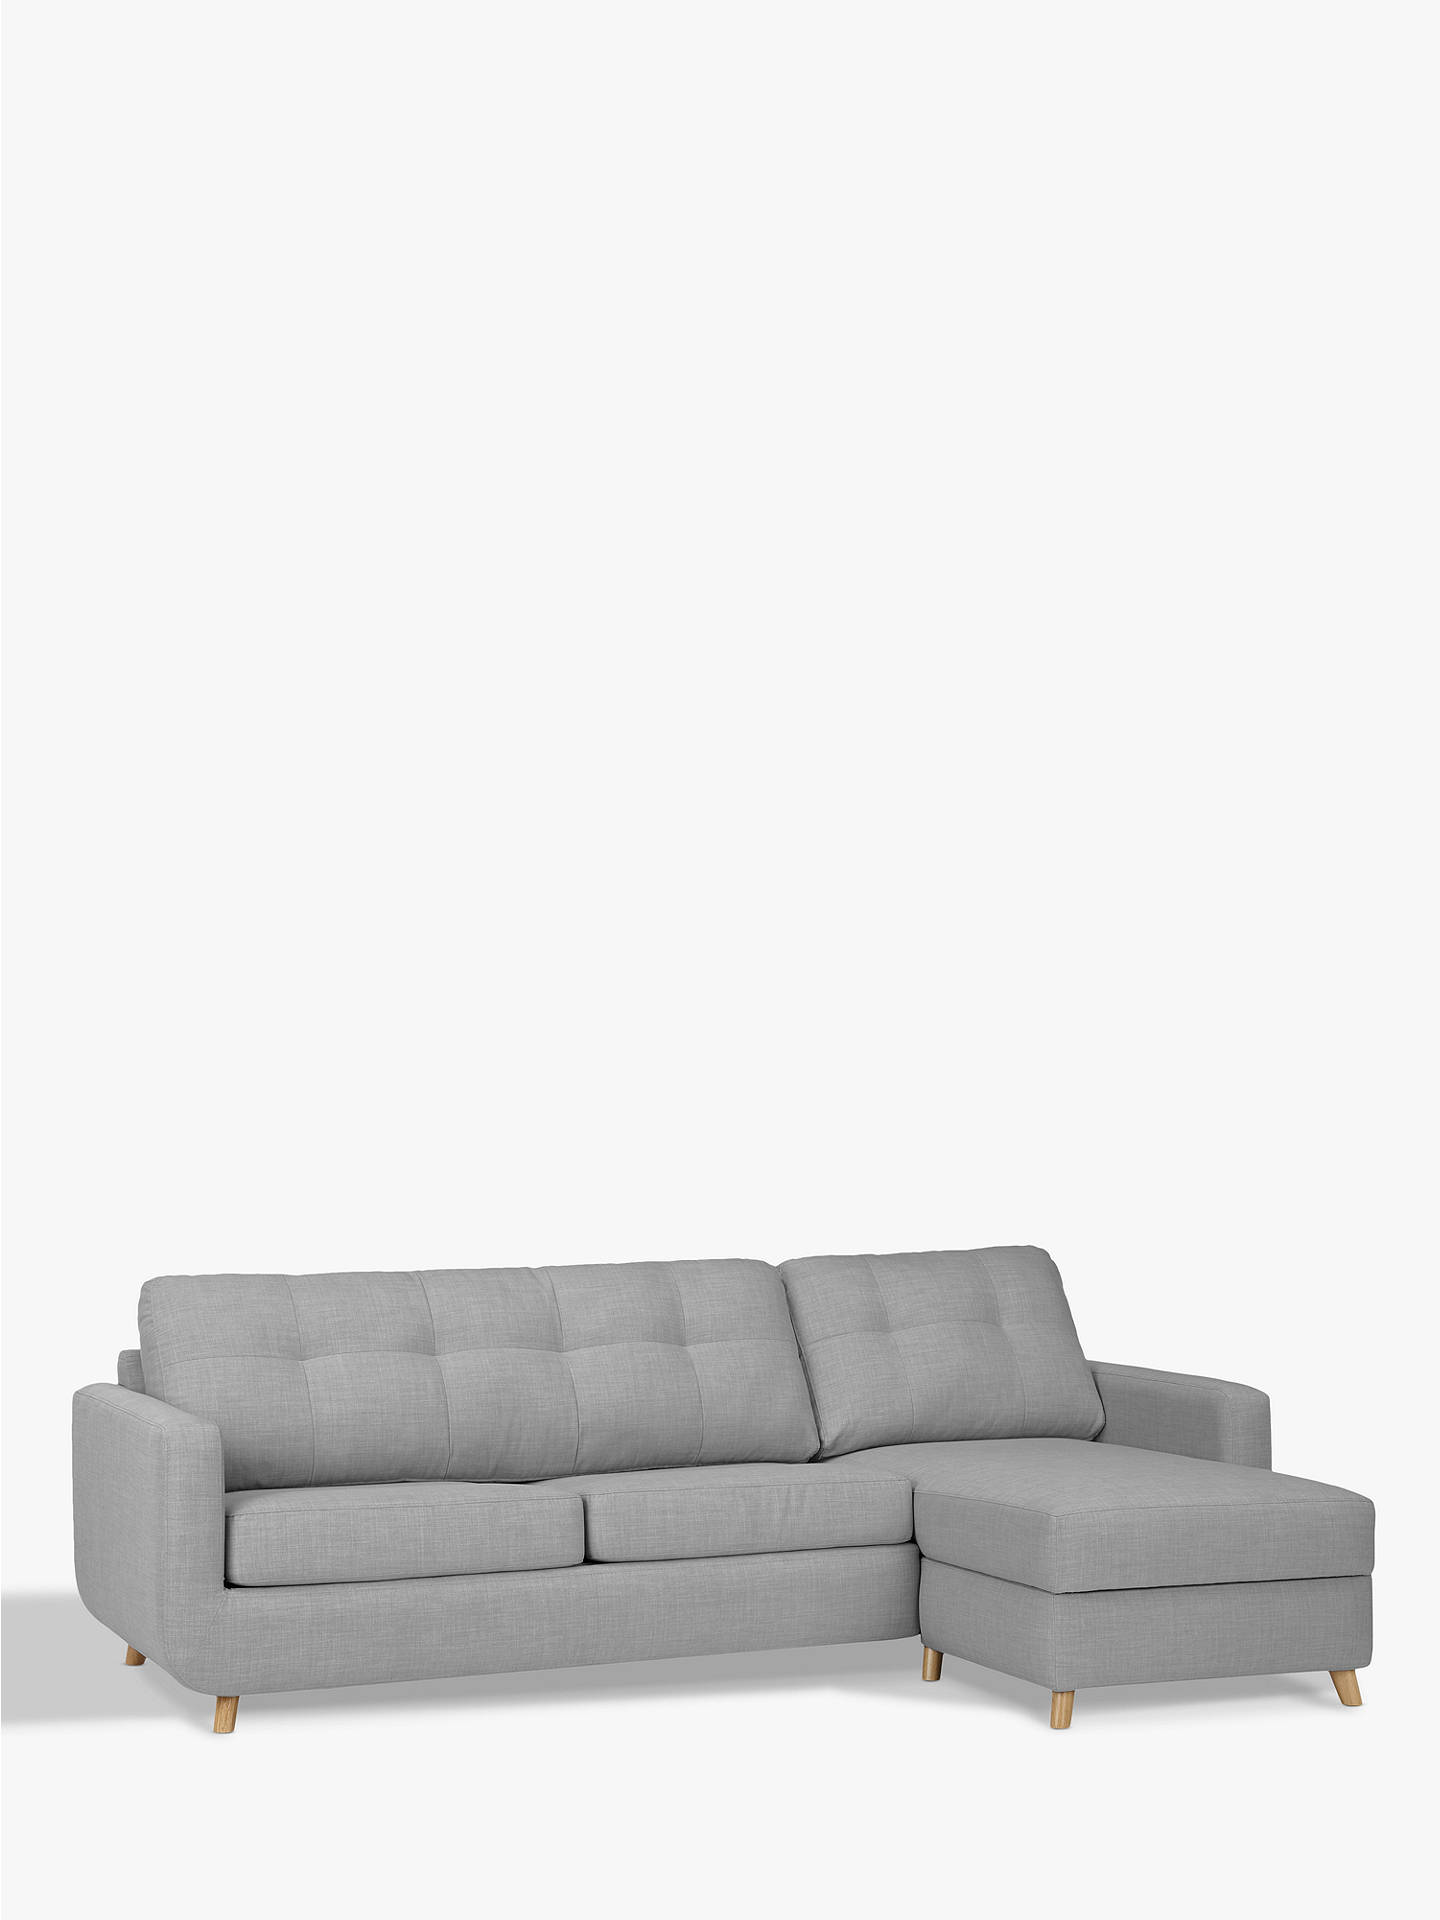 John Lewis Partners Barbican Rhf Chaise Sofa Bed With Storage At